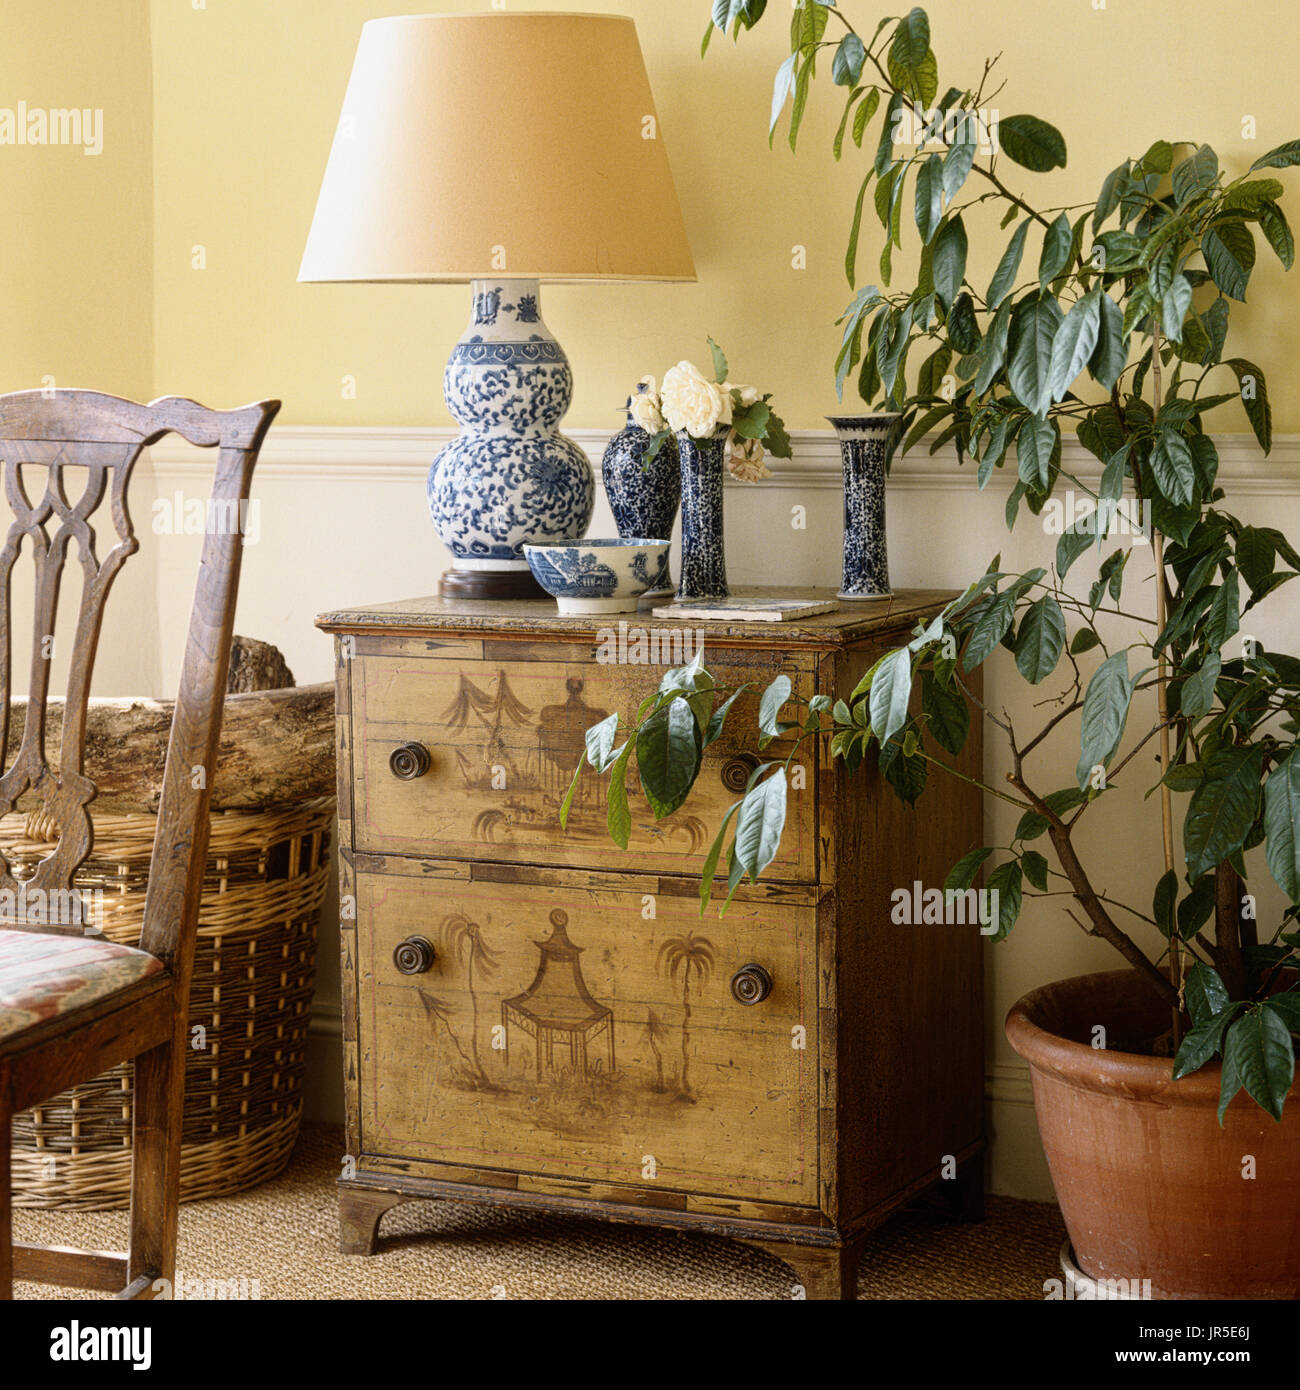 Oriental style drawers and display - Stock Image